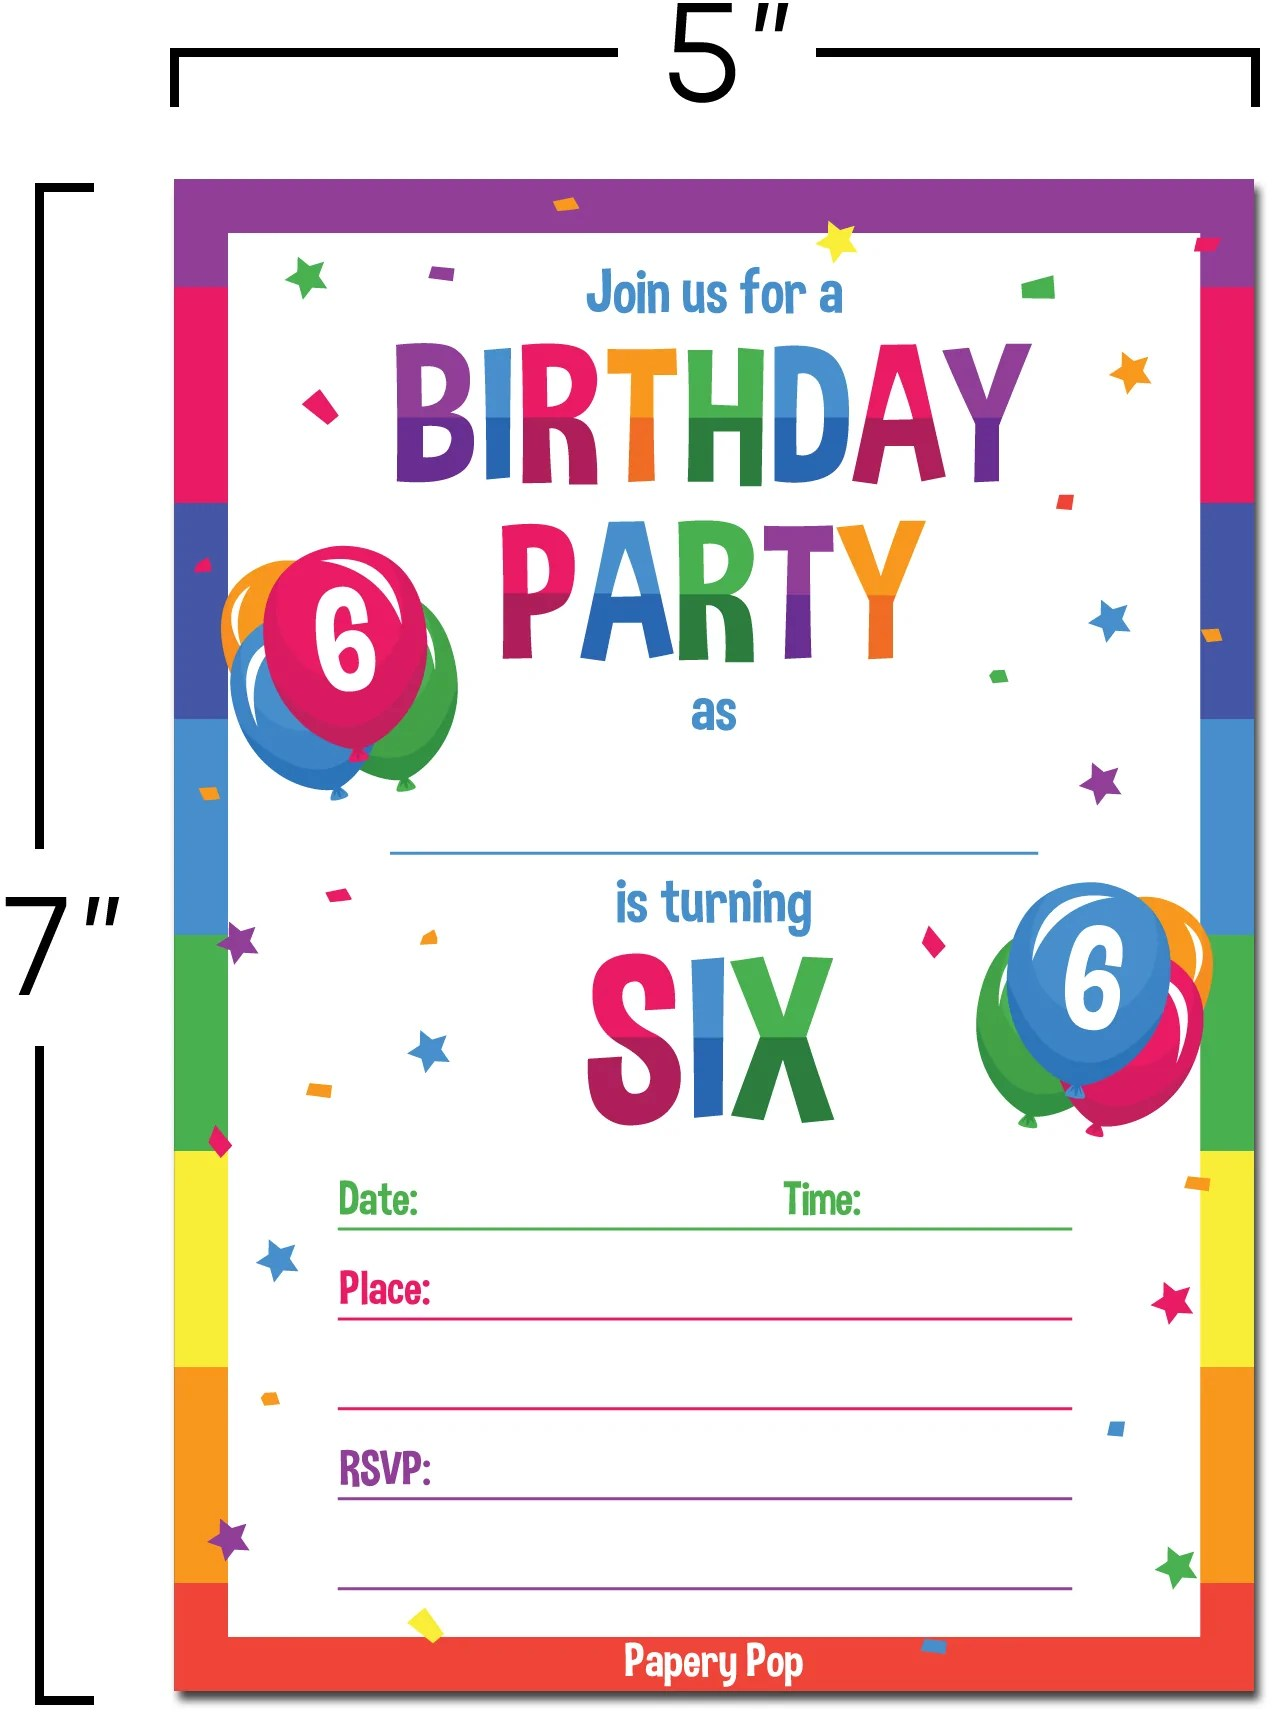 6 year old birthday party invitations